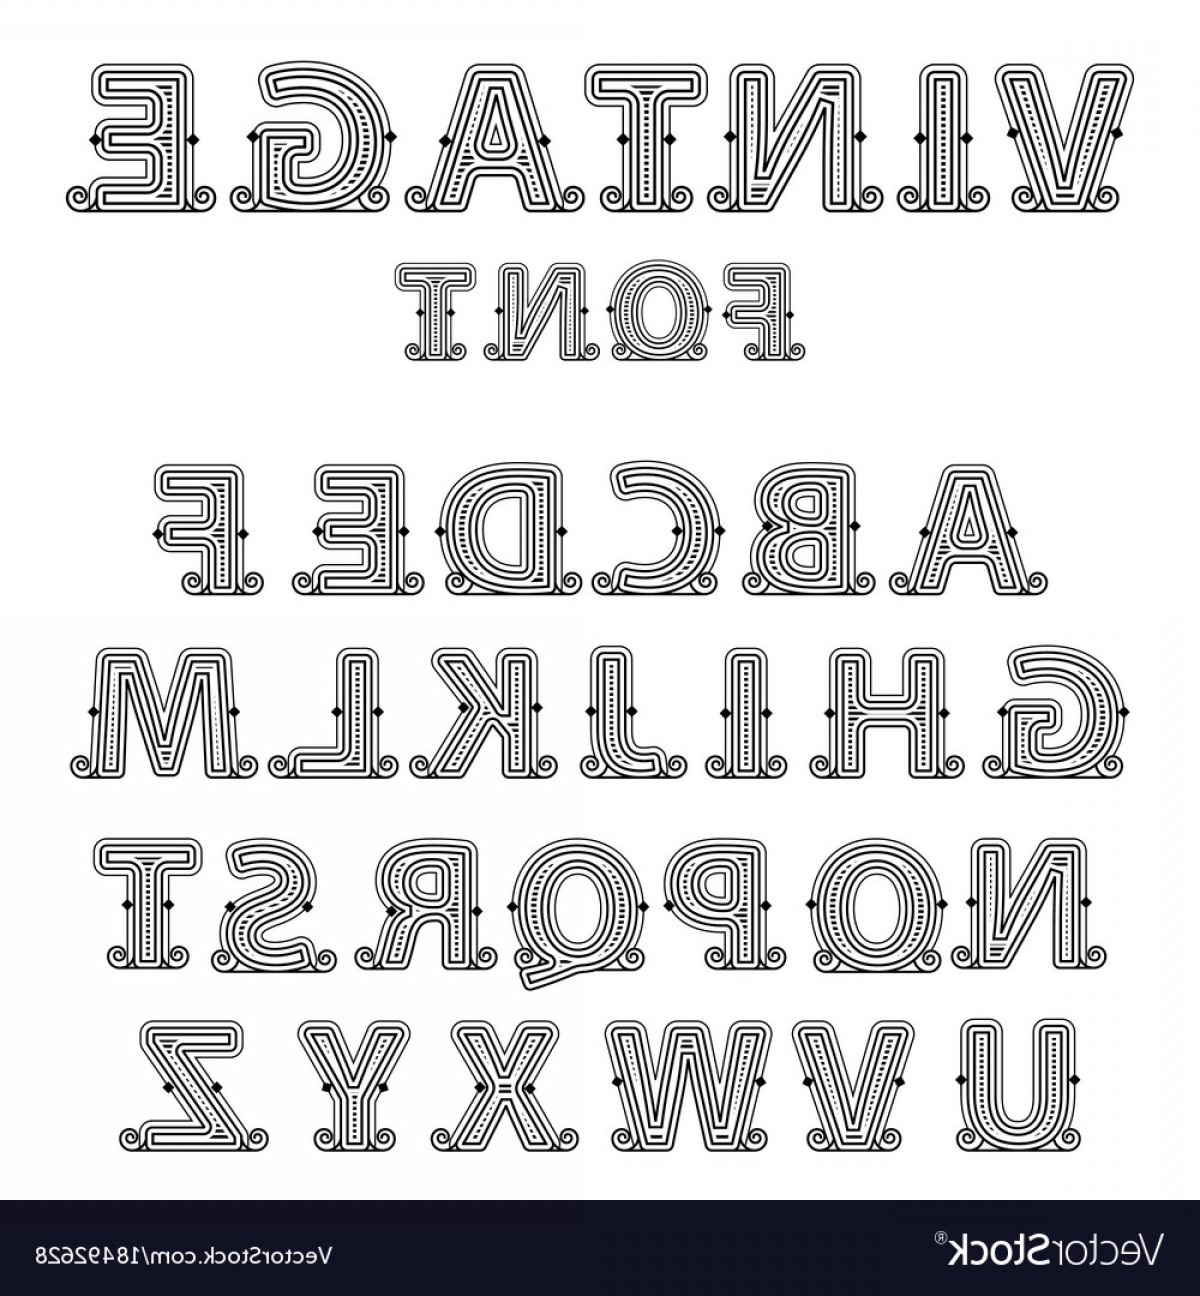 Decorative Font Vector Illustration: Retro Mono Line Decorative Font Vector